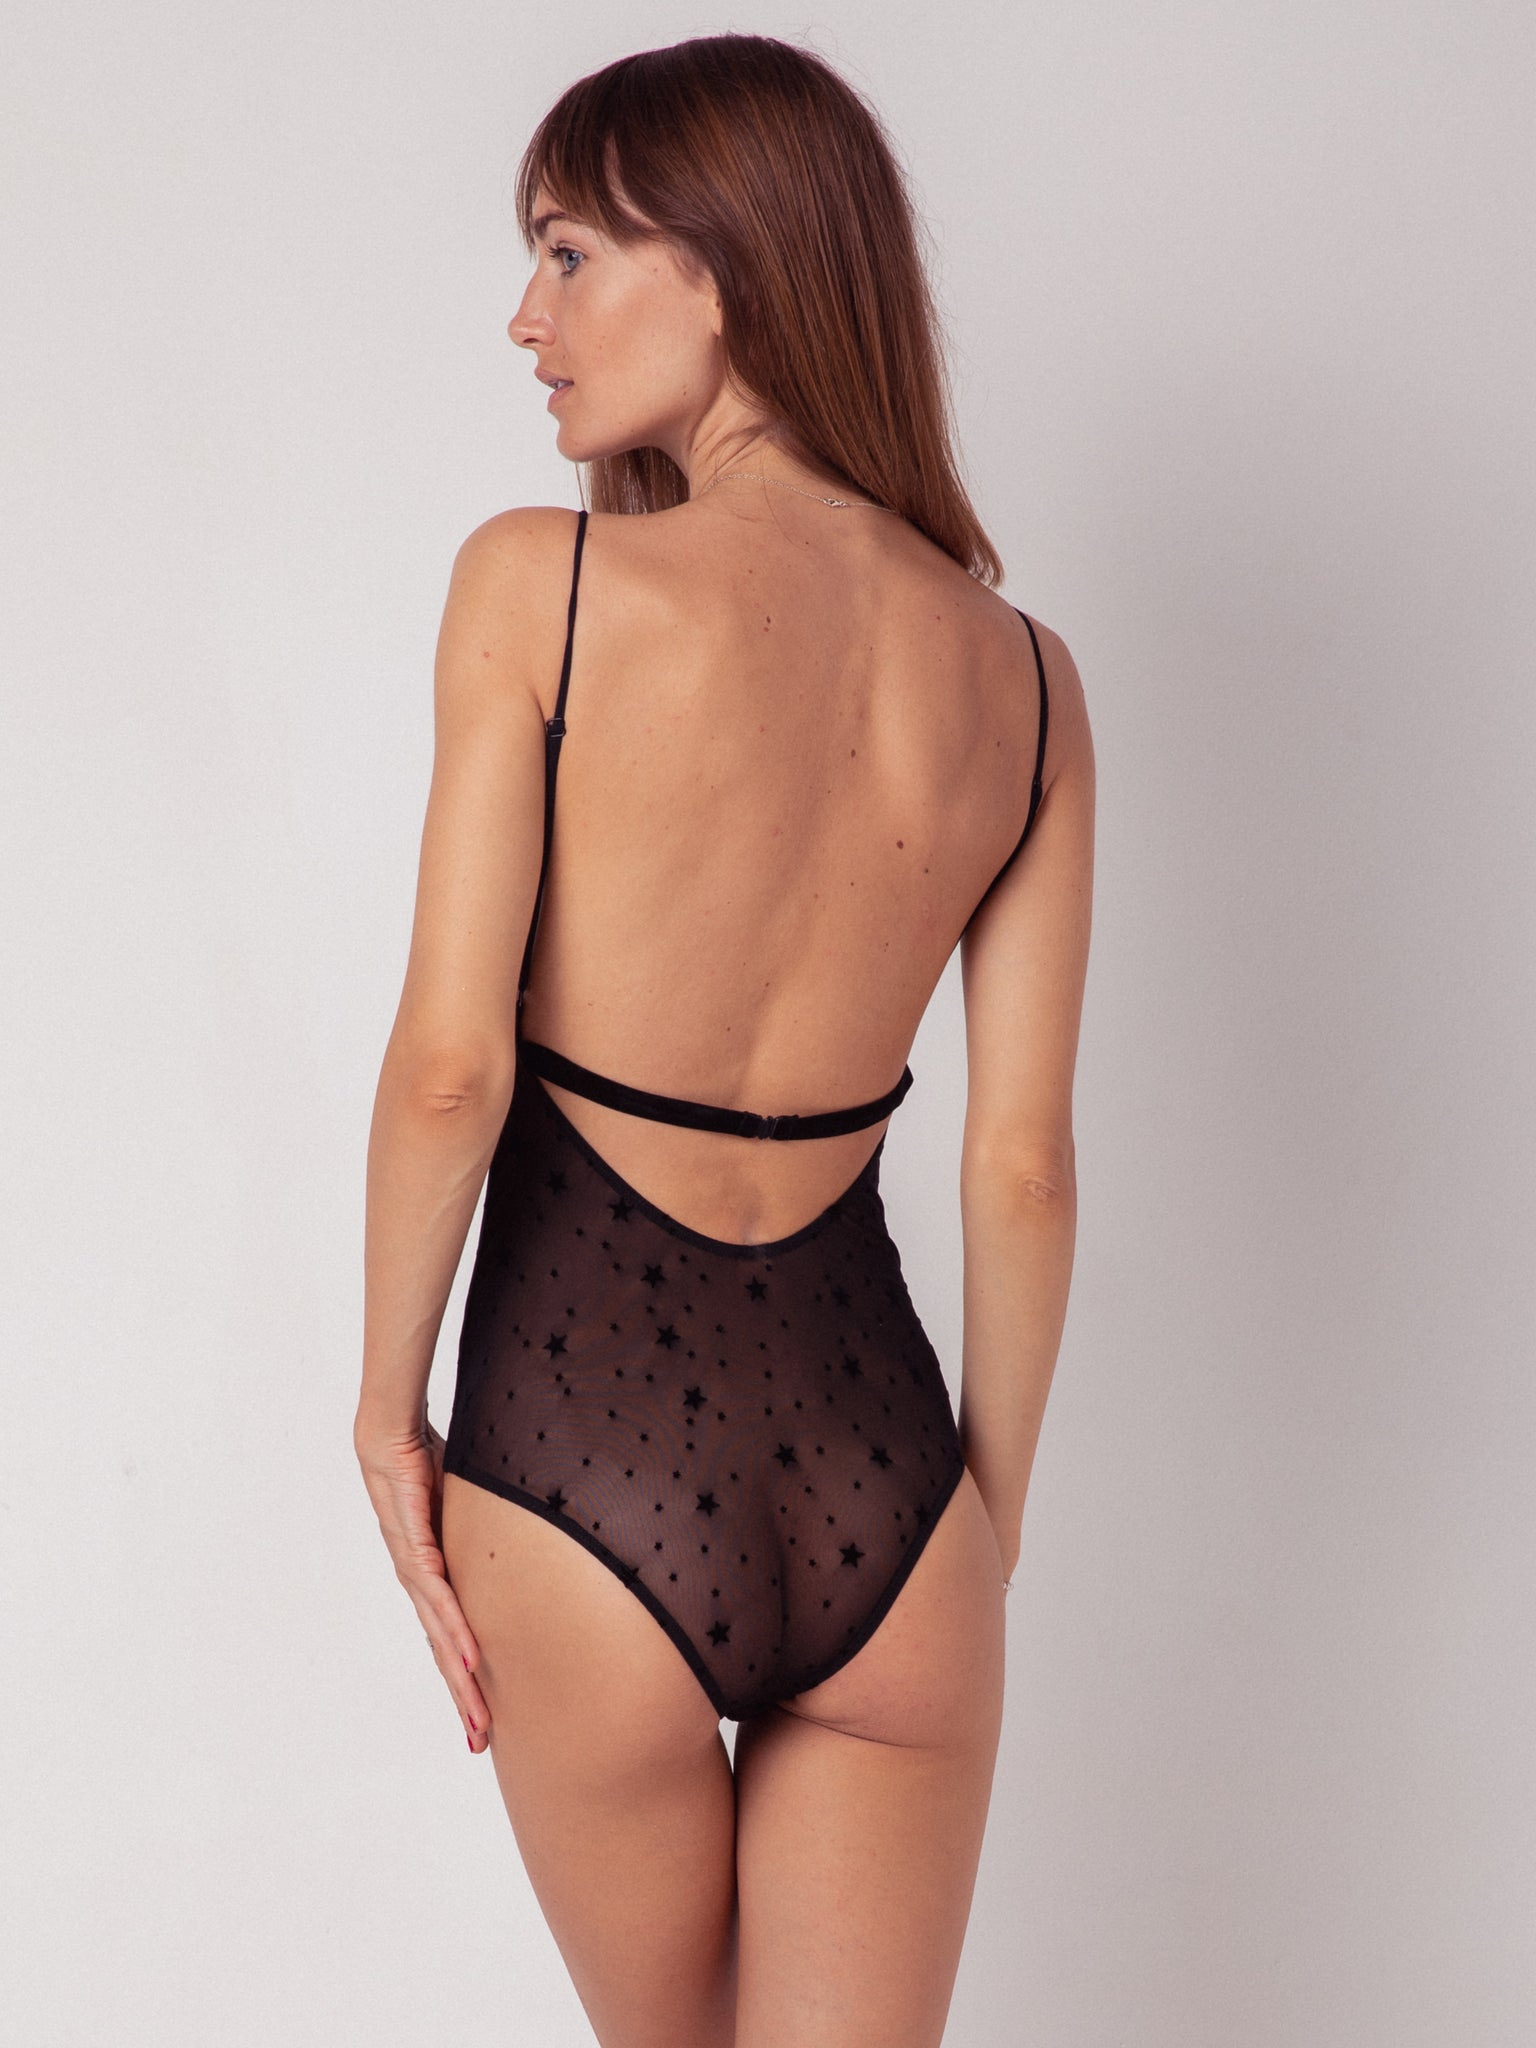 black body. underwear. fashion. one piece. souhela ferrah. lingerie. French